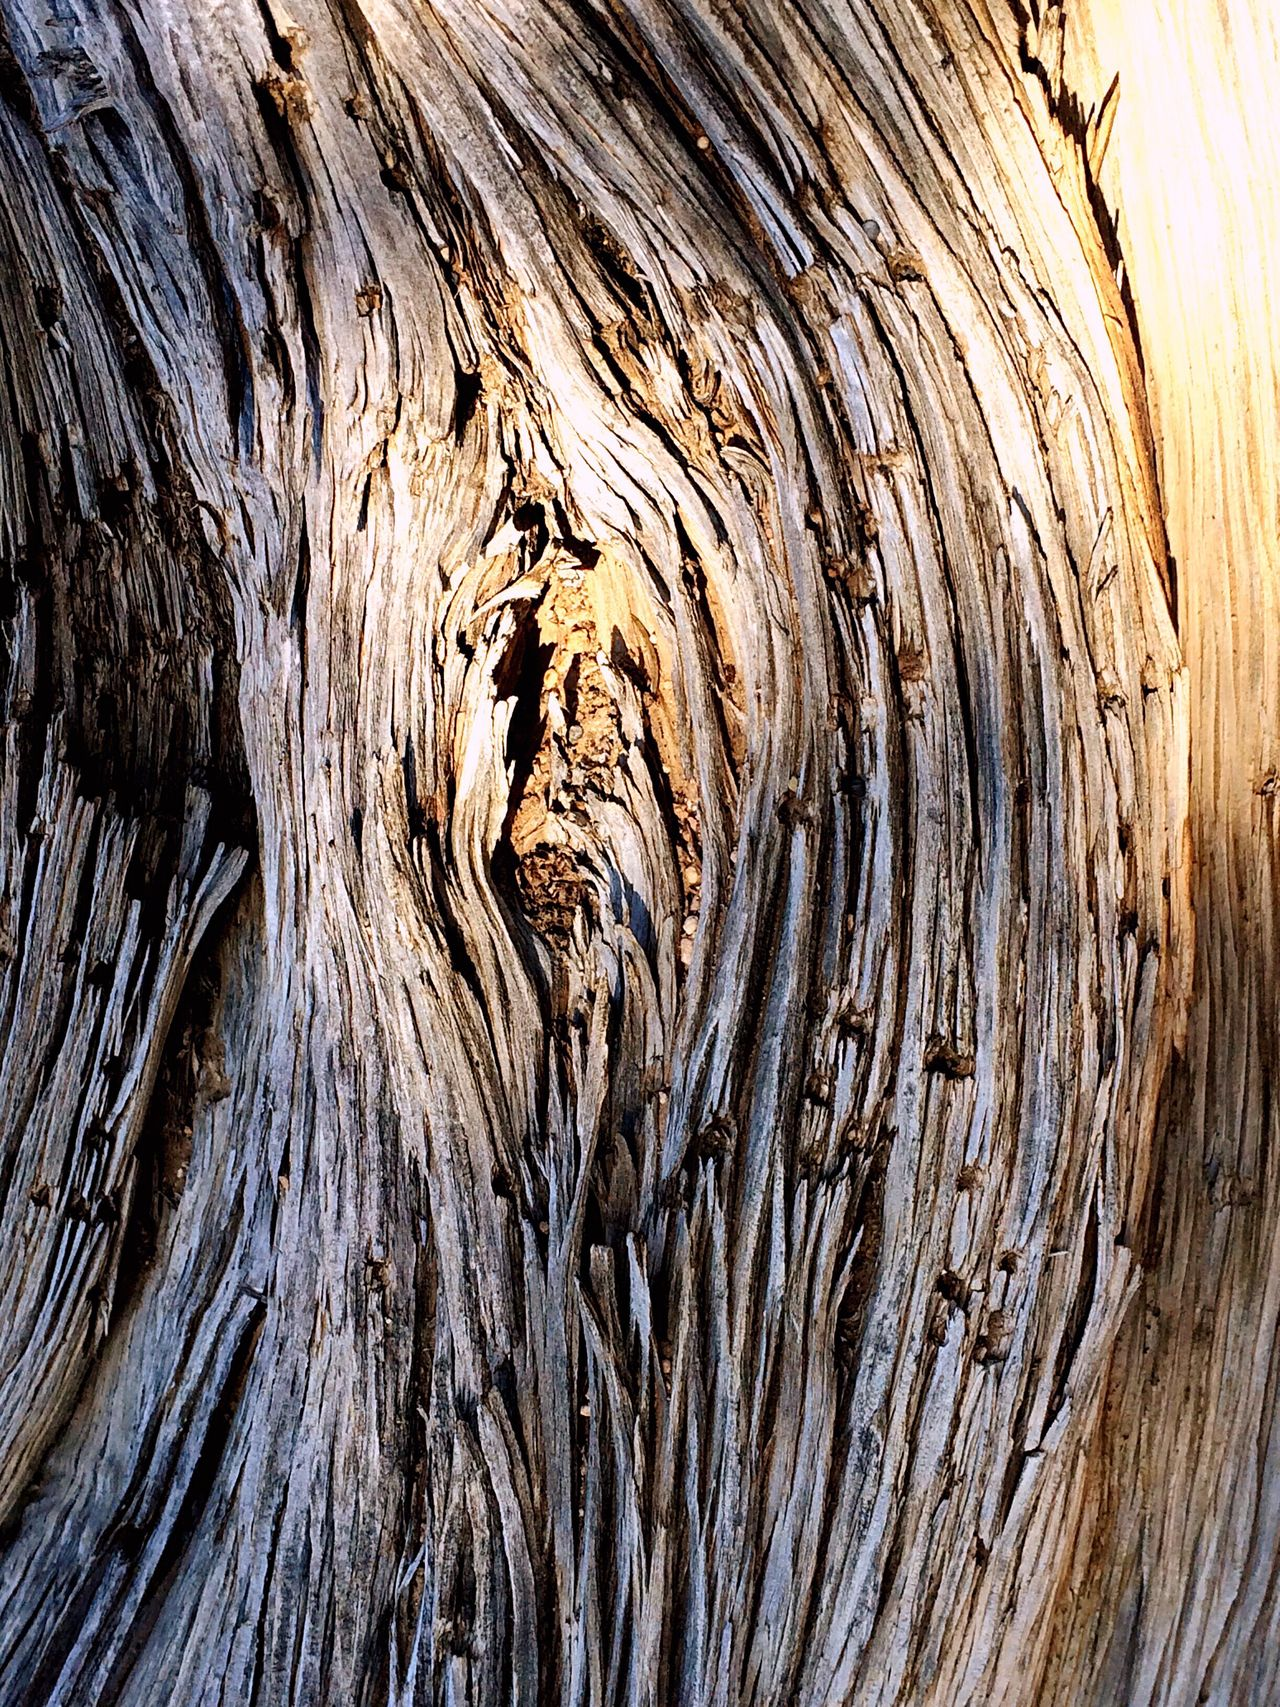 Wood Wooden Texture Wood Pattern Bark Bark Texture Bark Of A Tree Intricate Details Grain Of Wood Macro Photography Macro Beauty Desert Desert Beauty Desert Life Desert Plants Life Through A Lens Golden Light Love Of Nature EyeEm Nature Lover Light And Shadow Light Shadow Tree Tree Trunk Juniper Juniper Trees